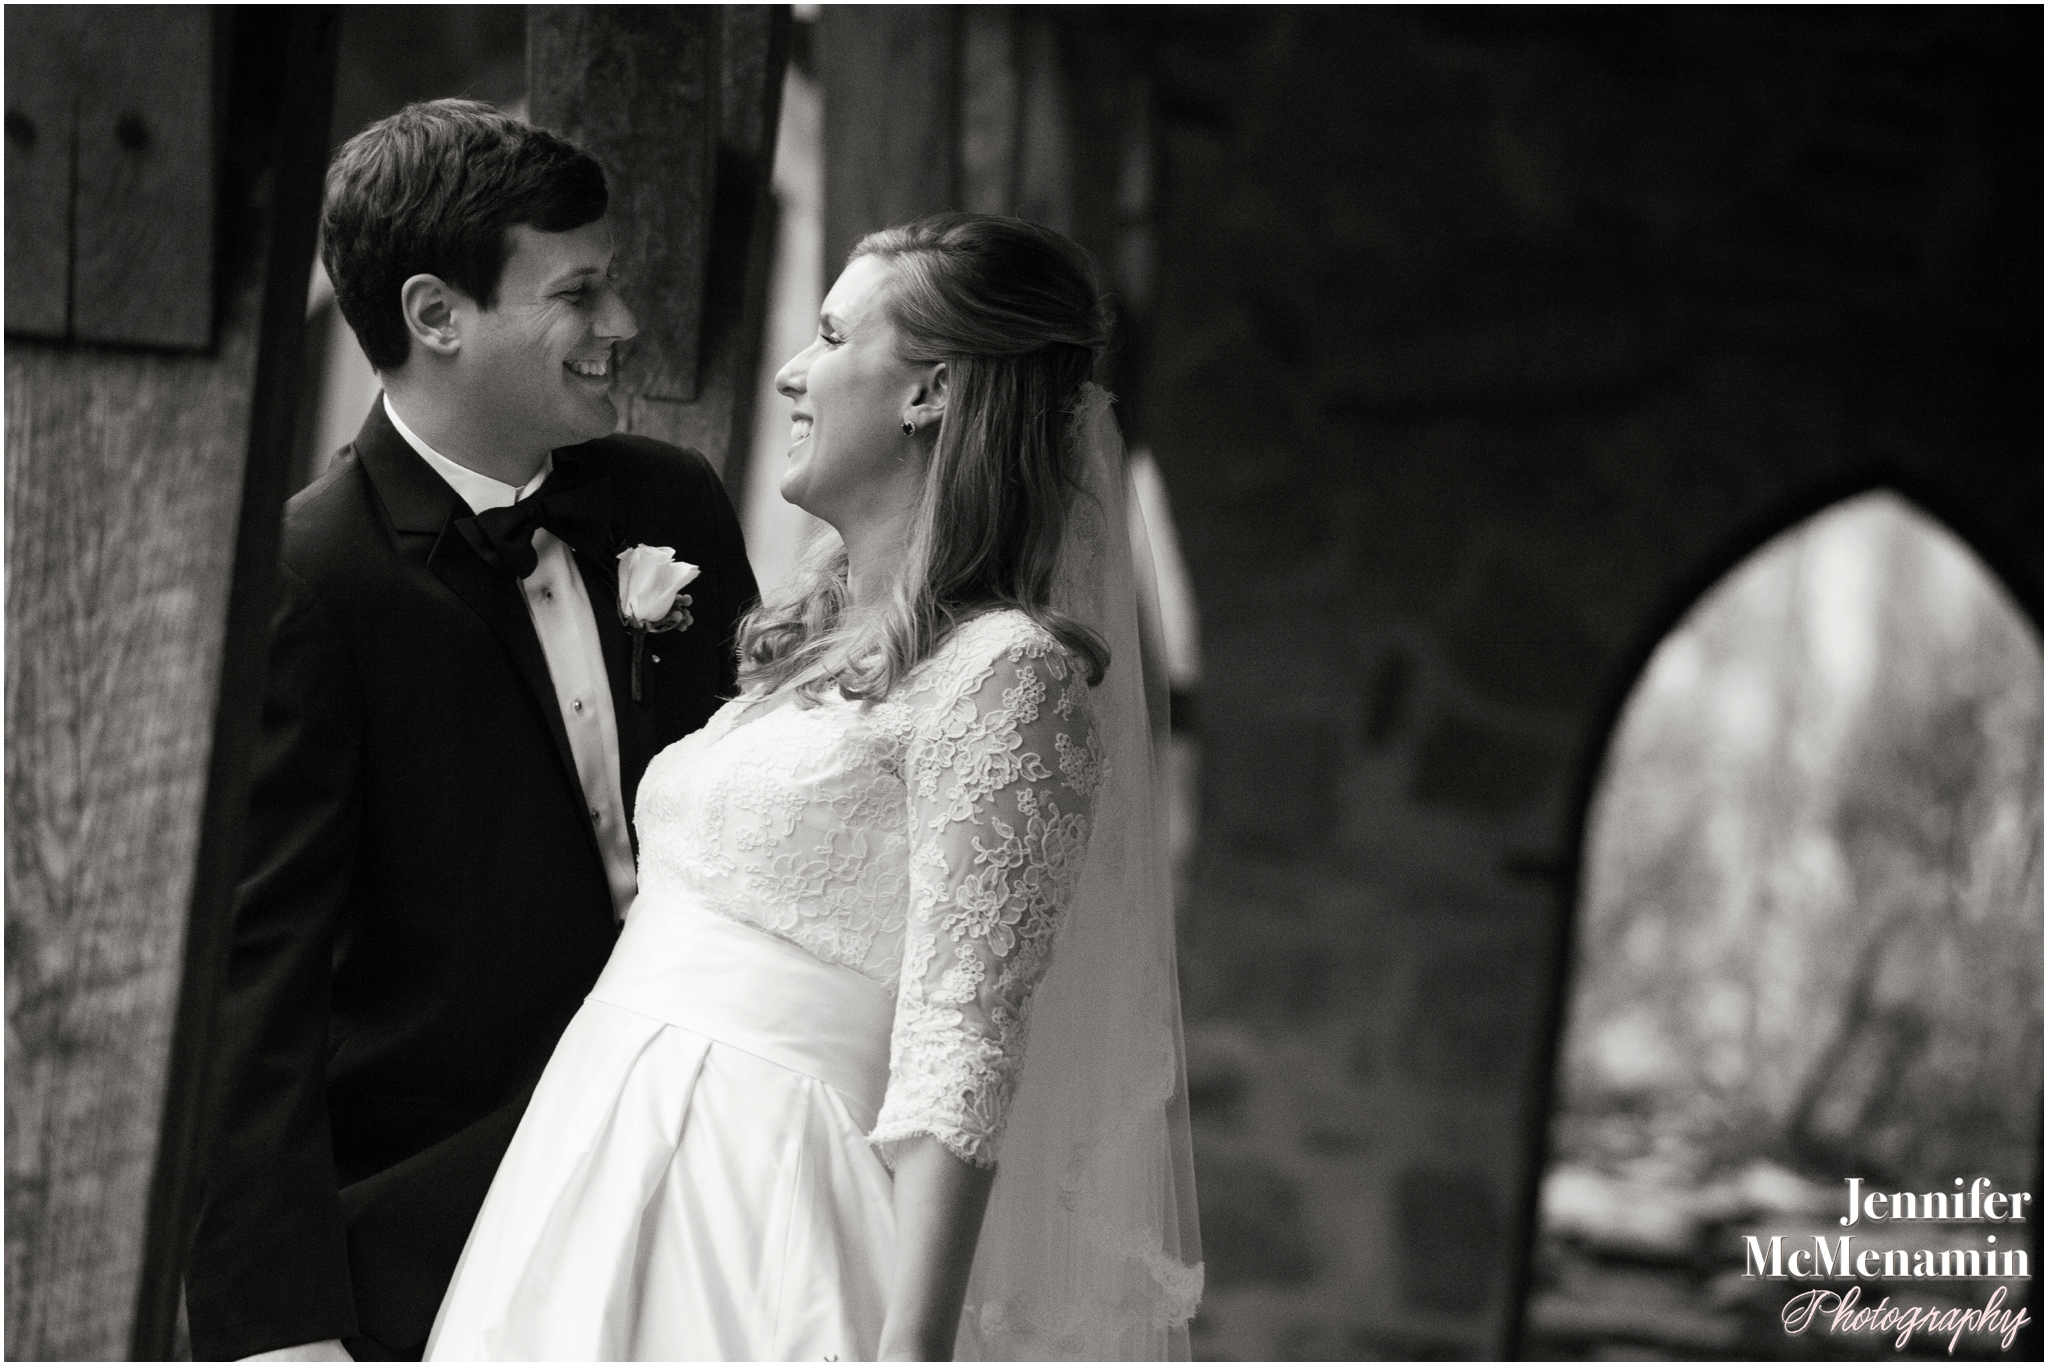 0075_RyanClemmens_02074bw-0567_JenniferMcMenaminPhotography_Immaculate-Conception-Church_The-Cloisters_Baltimore-wedding-photography_Baltimore-wedding-photographer